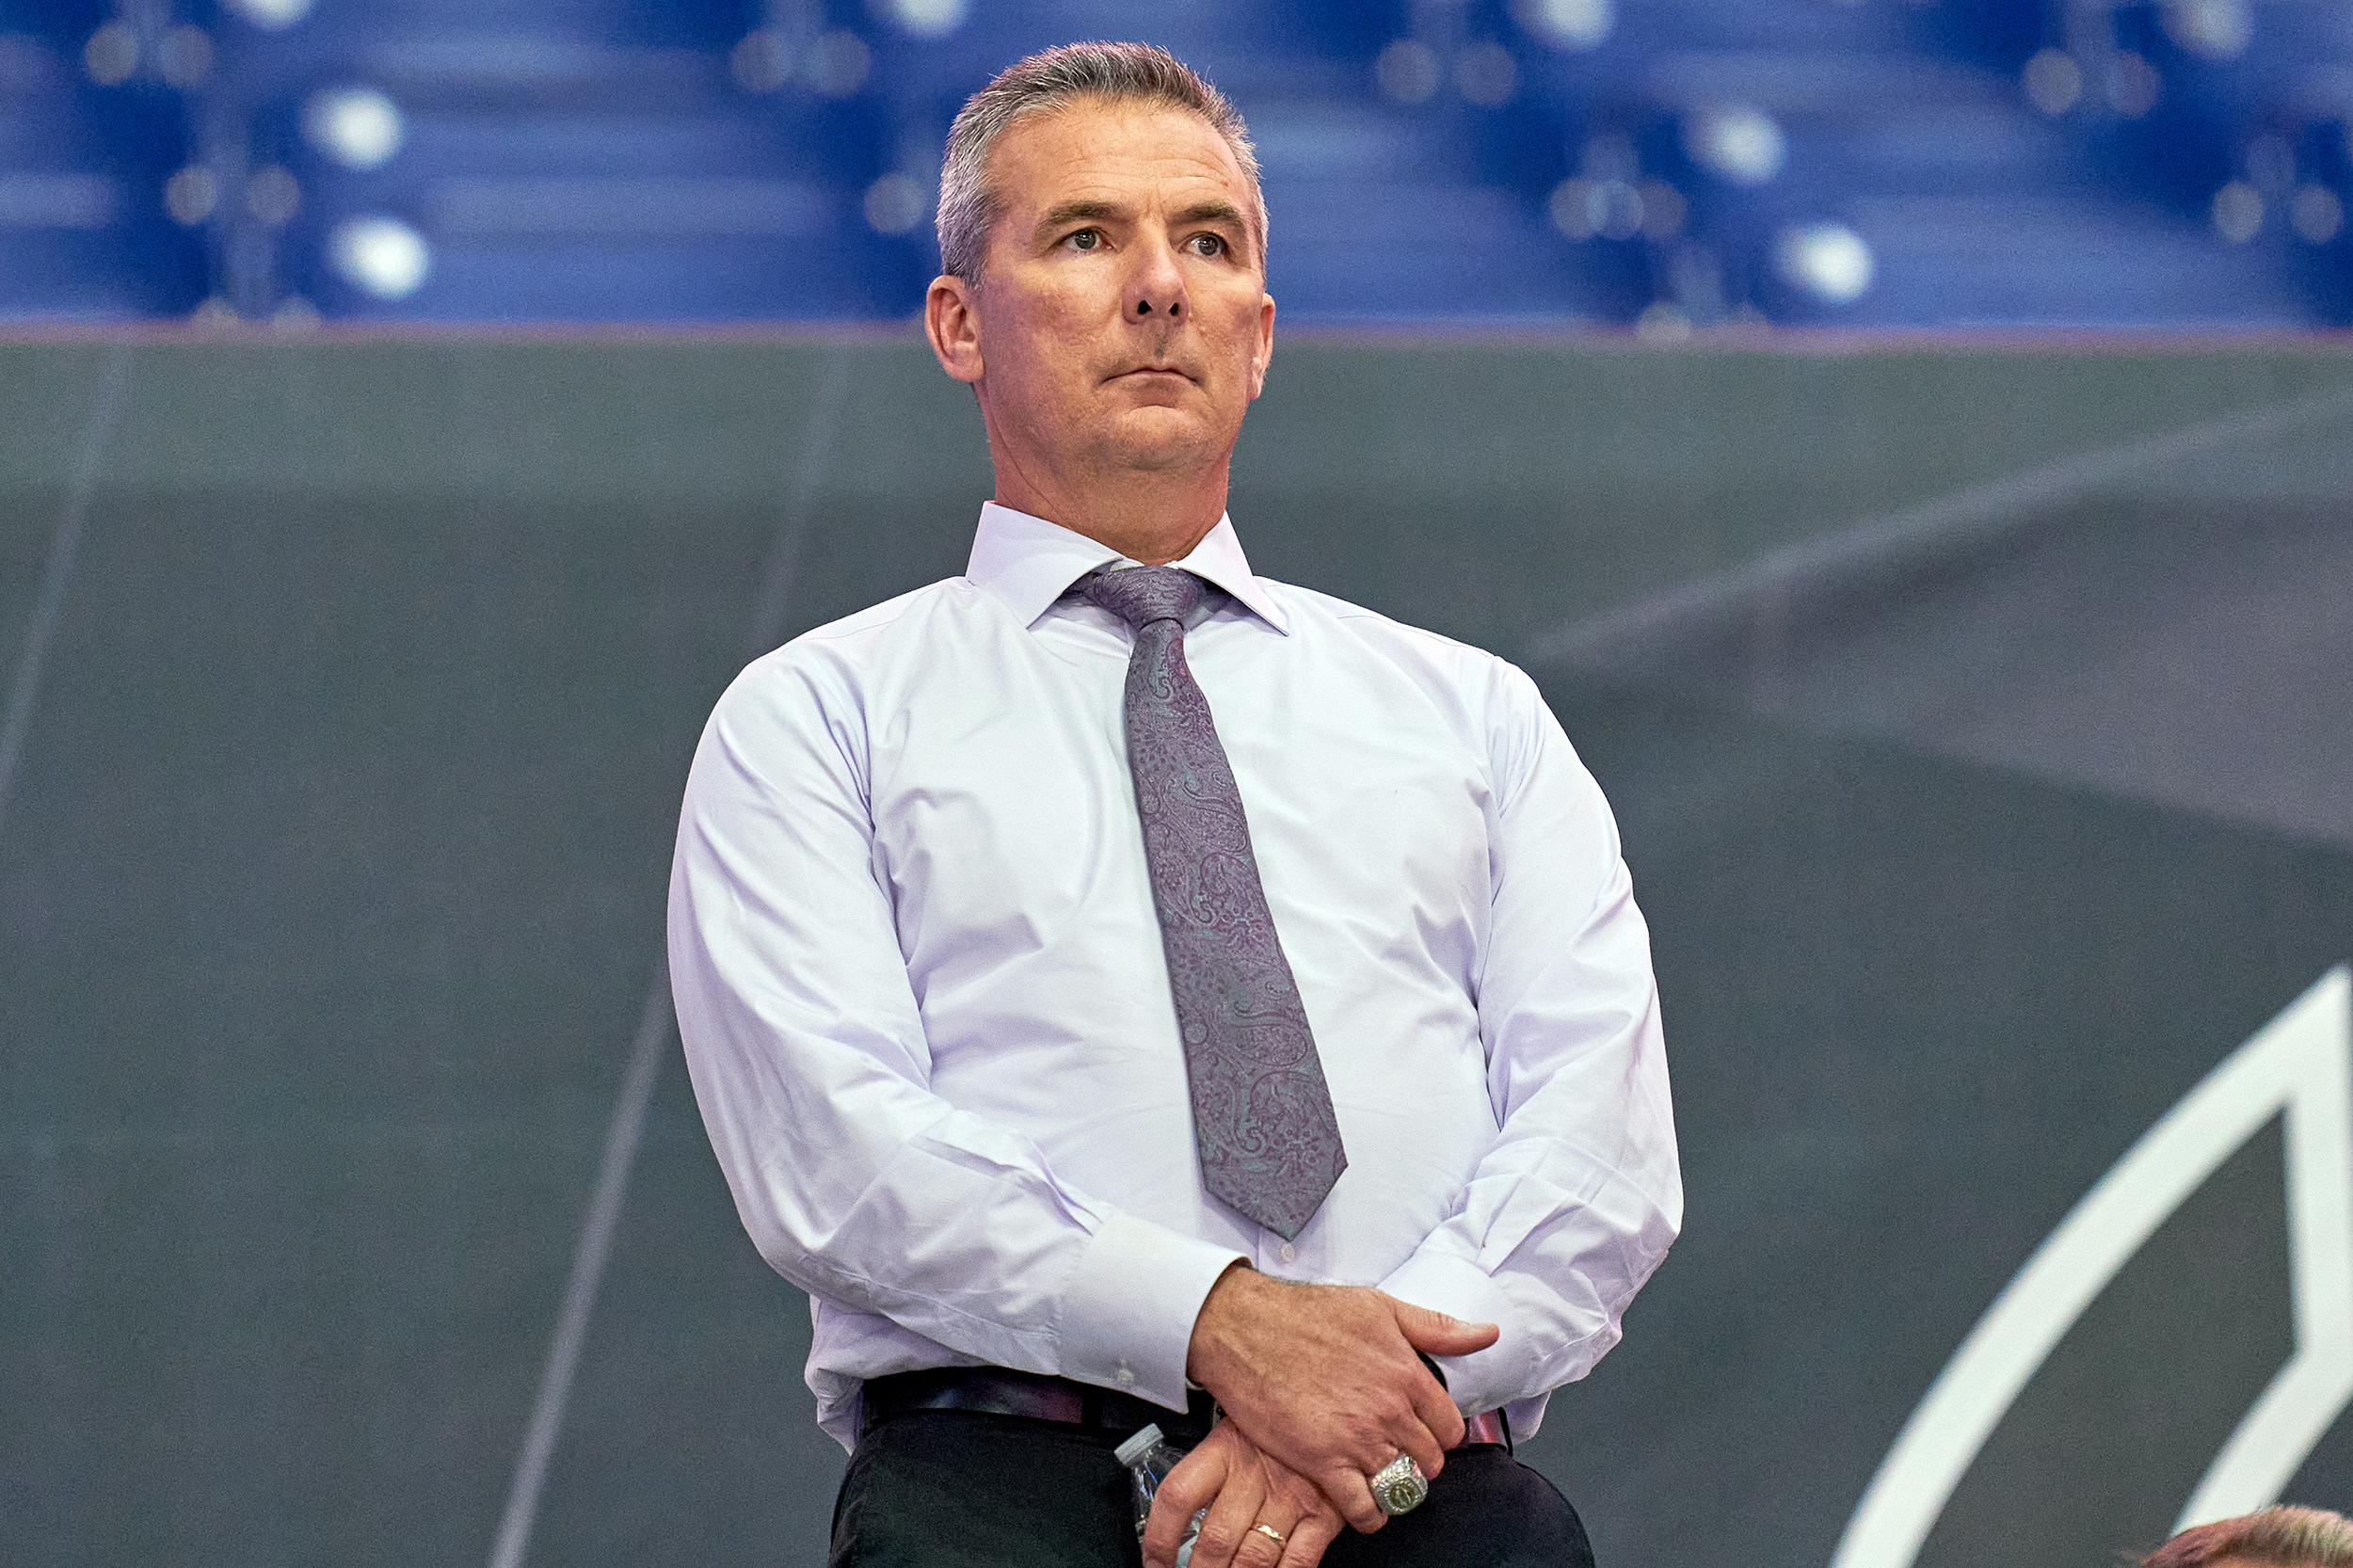 Jacksonville Jaguars hire Urban Meyer as head coach